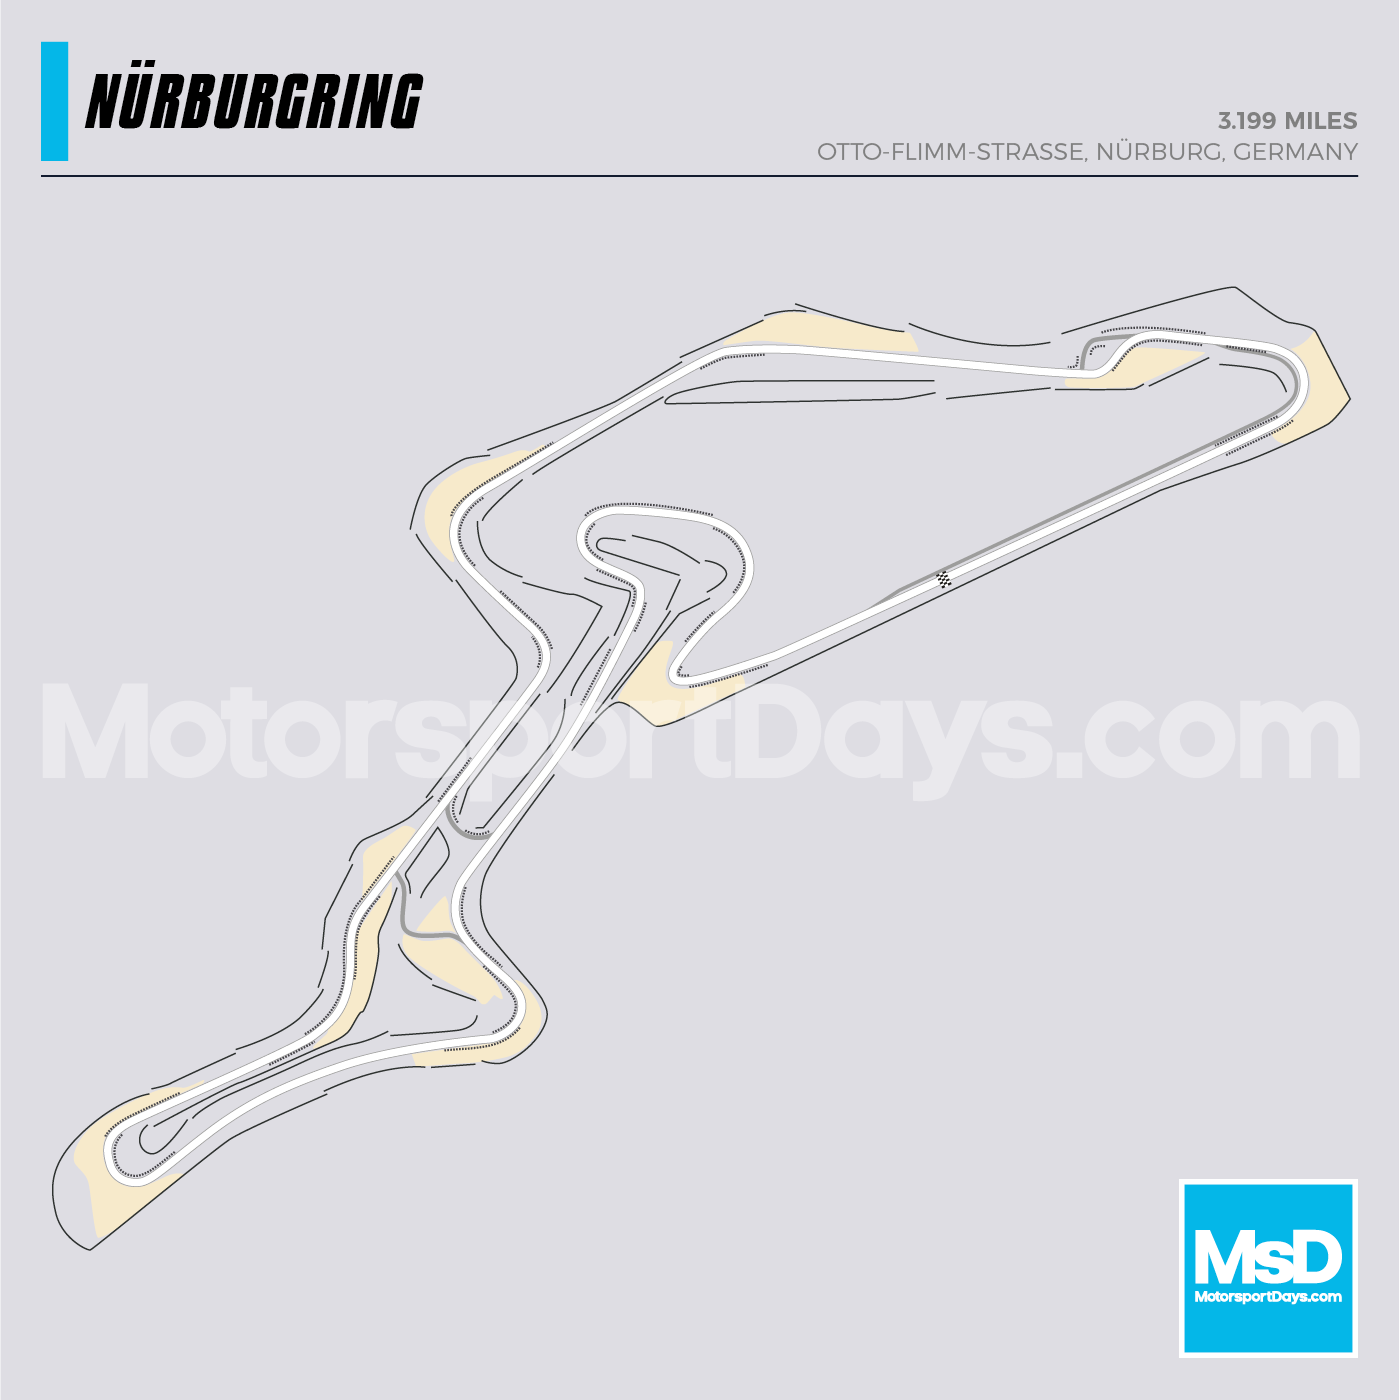 Nurburgring-Circuit-track-map